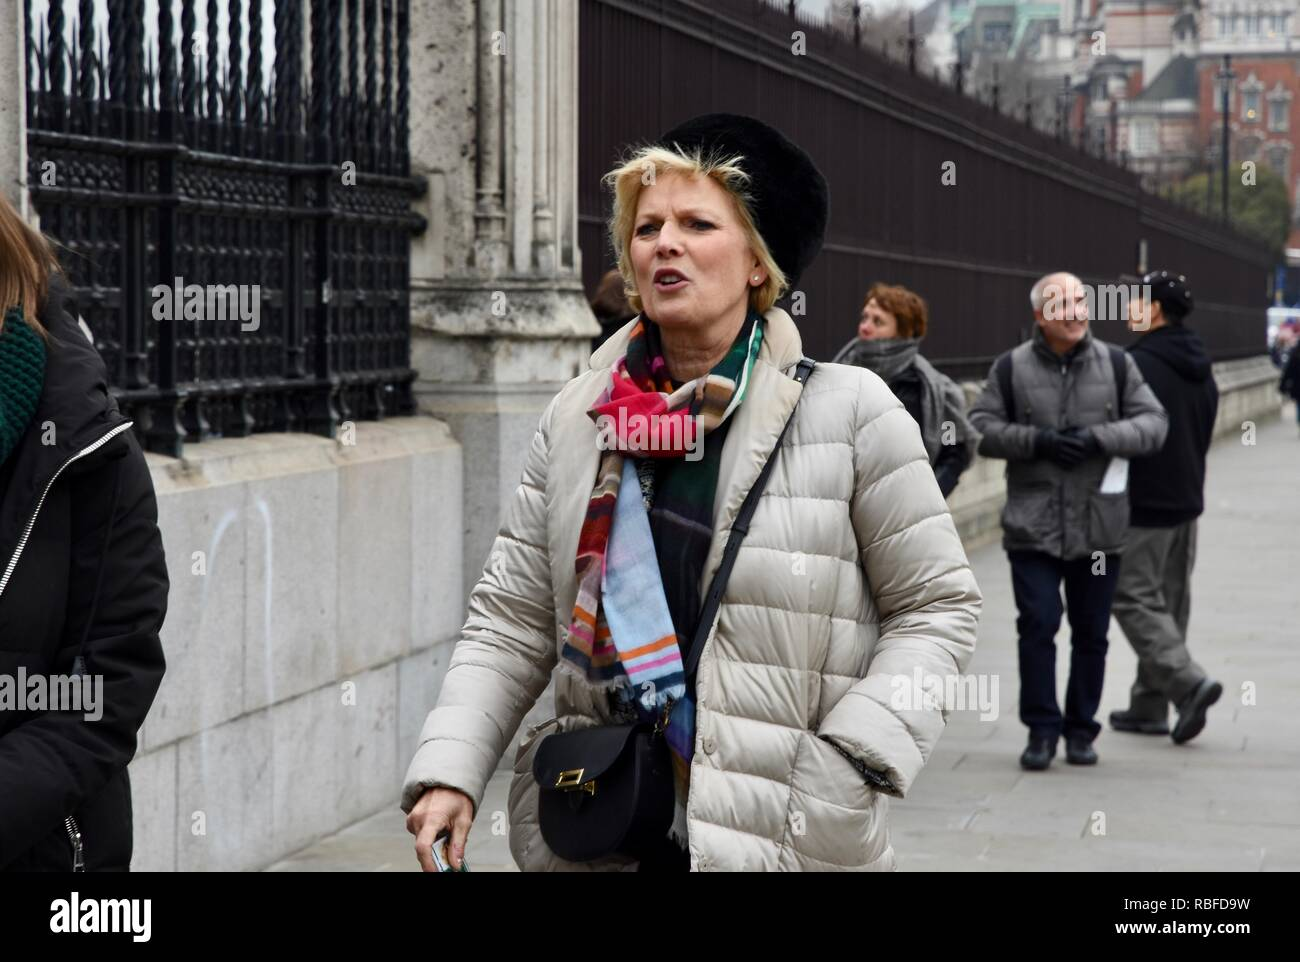 Westminster, London, UK. 10th Jan 2019. Anna SourbyConservative MP returned to Parliament following a peaceful encounter with Pro and Anti Brexit protesters on College Green, Westminster, London.UK Credit: michael melia/Alamy Live News Stock Photo